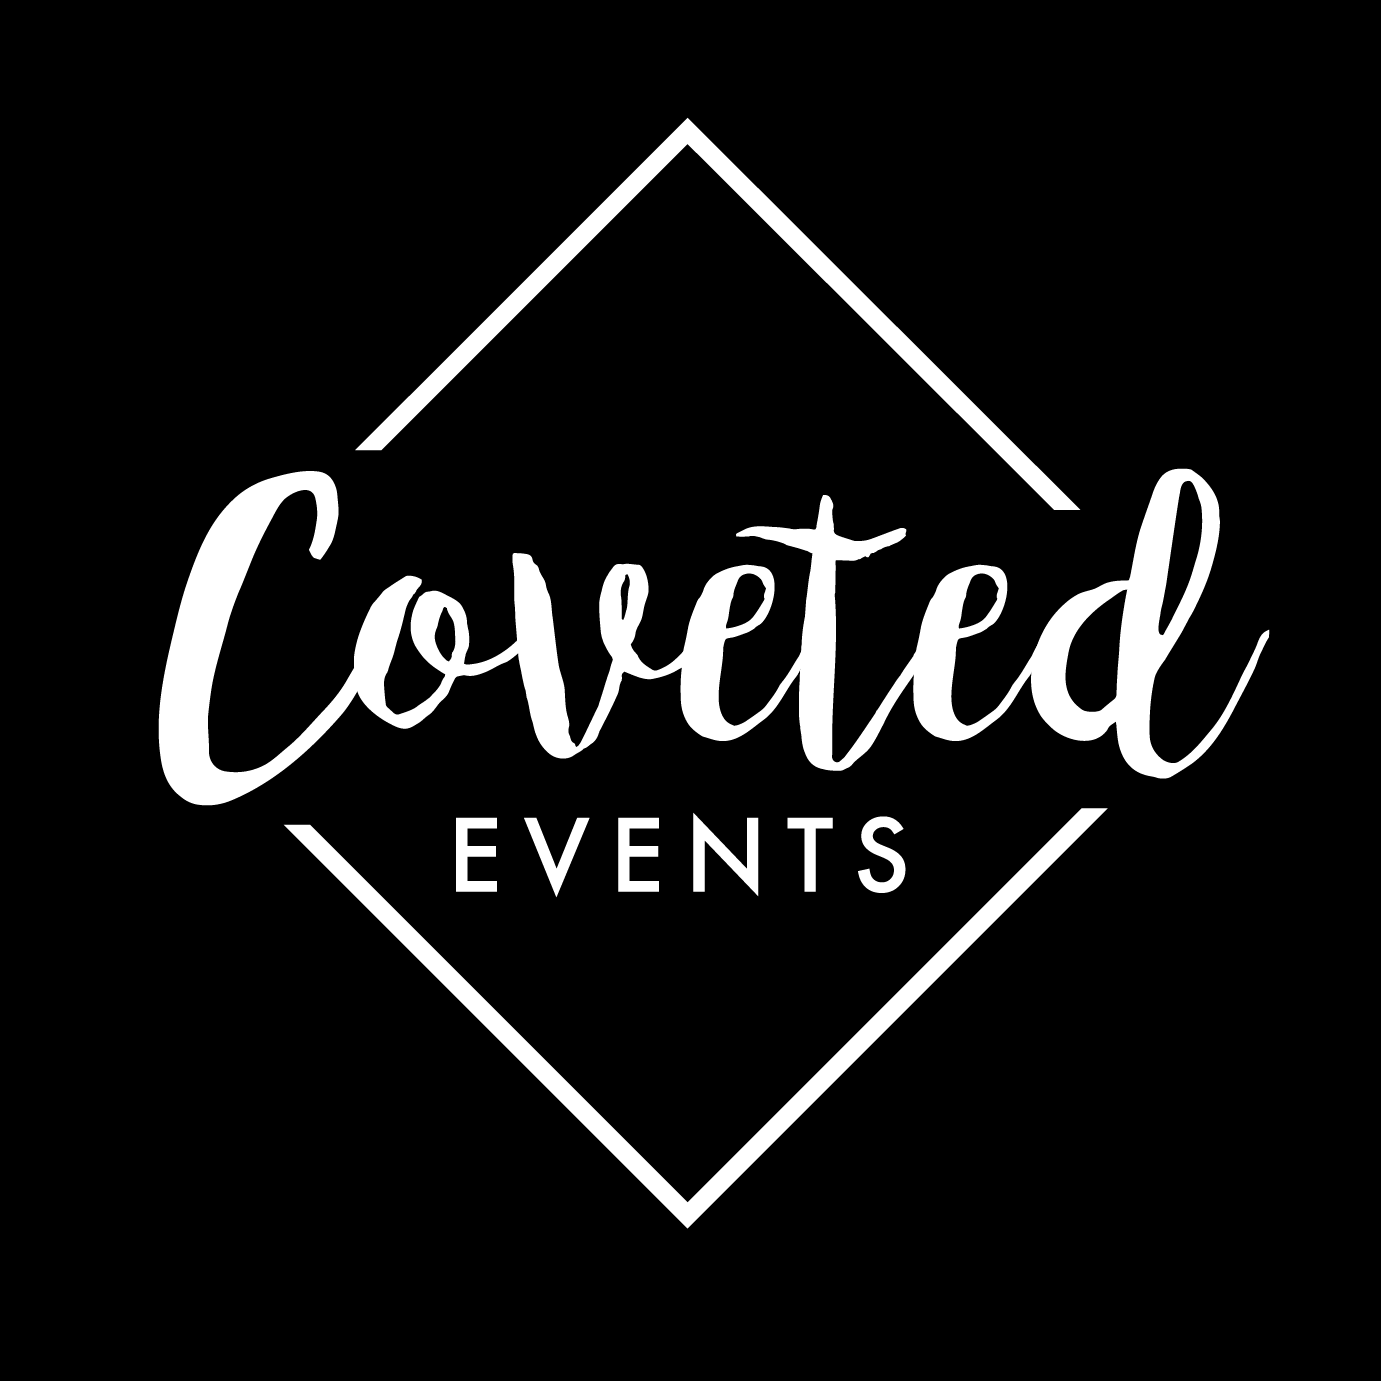 Coveted Events